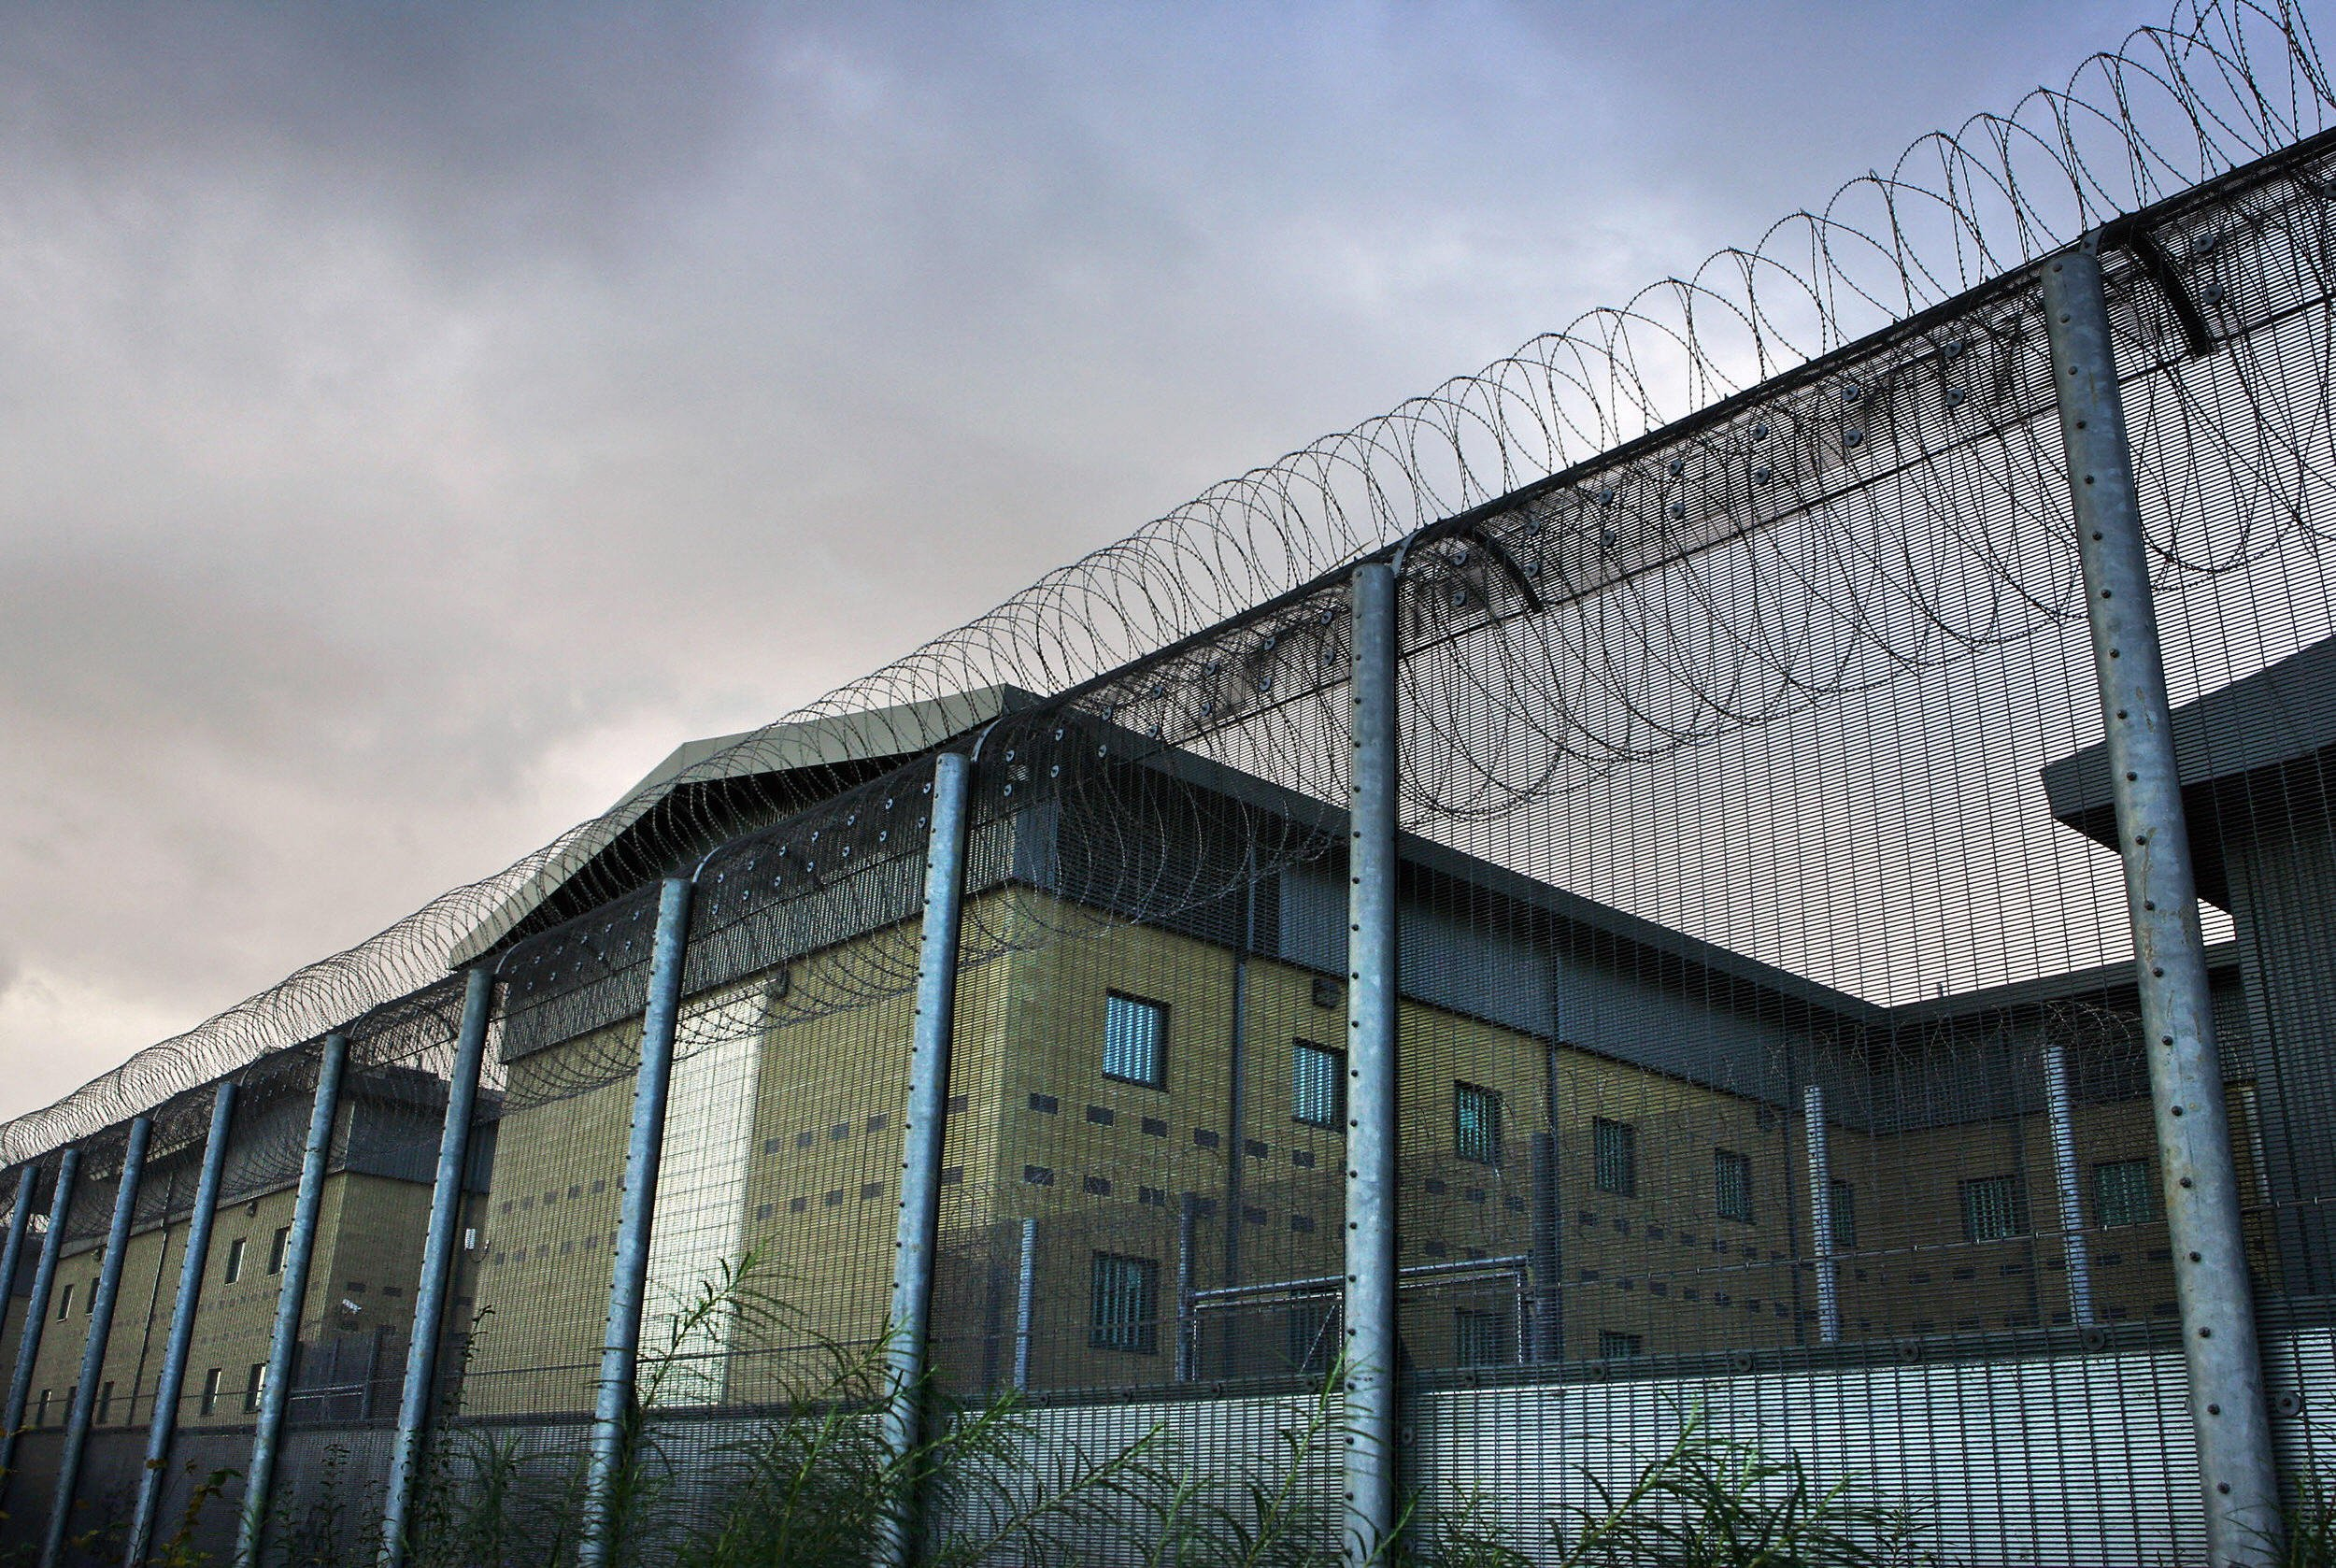 The Harmondsworth Detention Centre in London